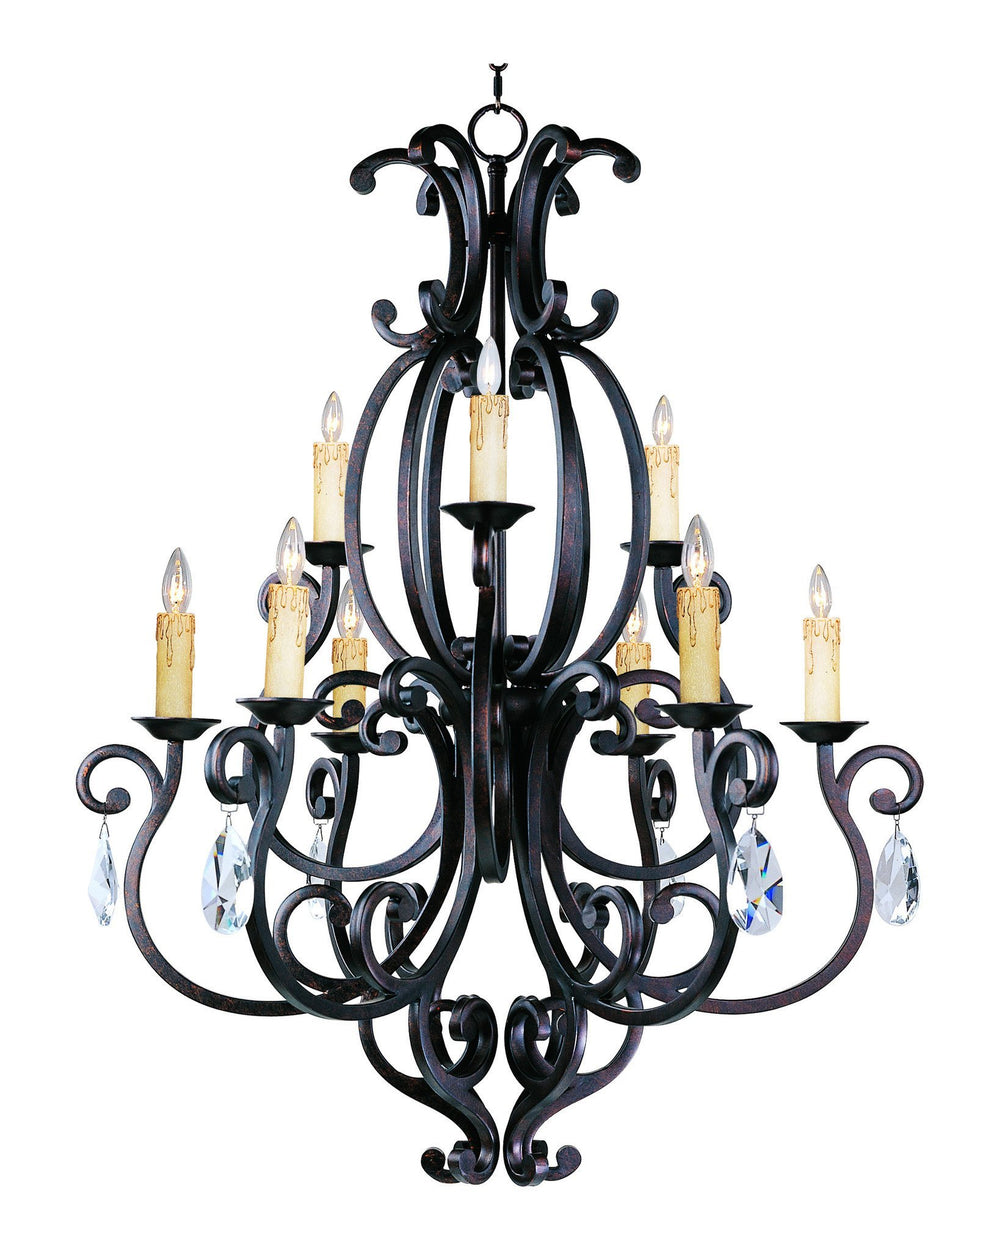 Maxim CRY08331006CU/ Richmond 9-Light Chandelier with Crystals & Shades